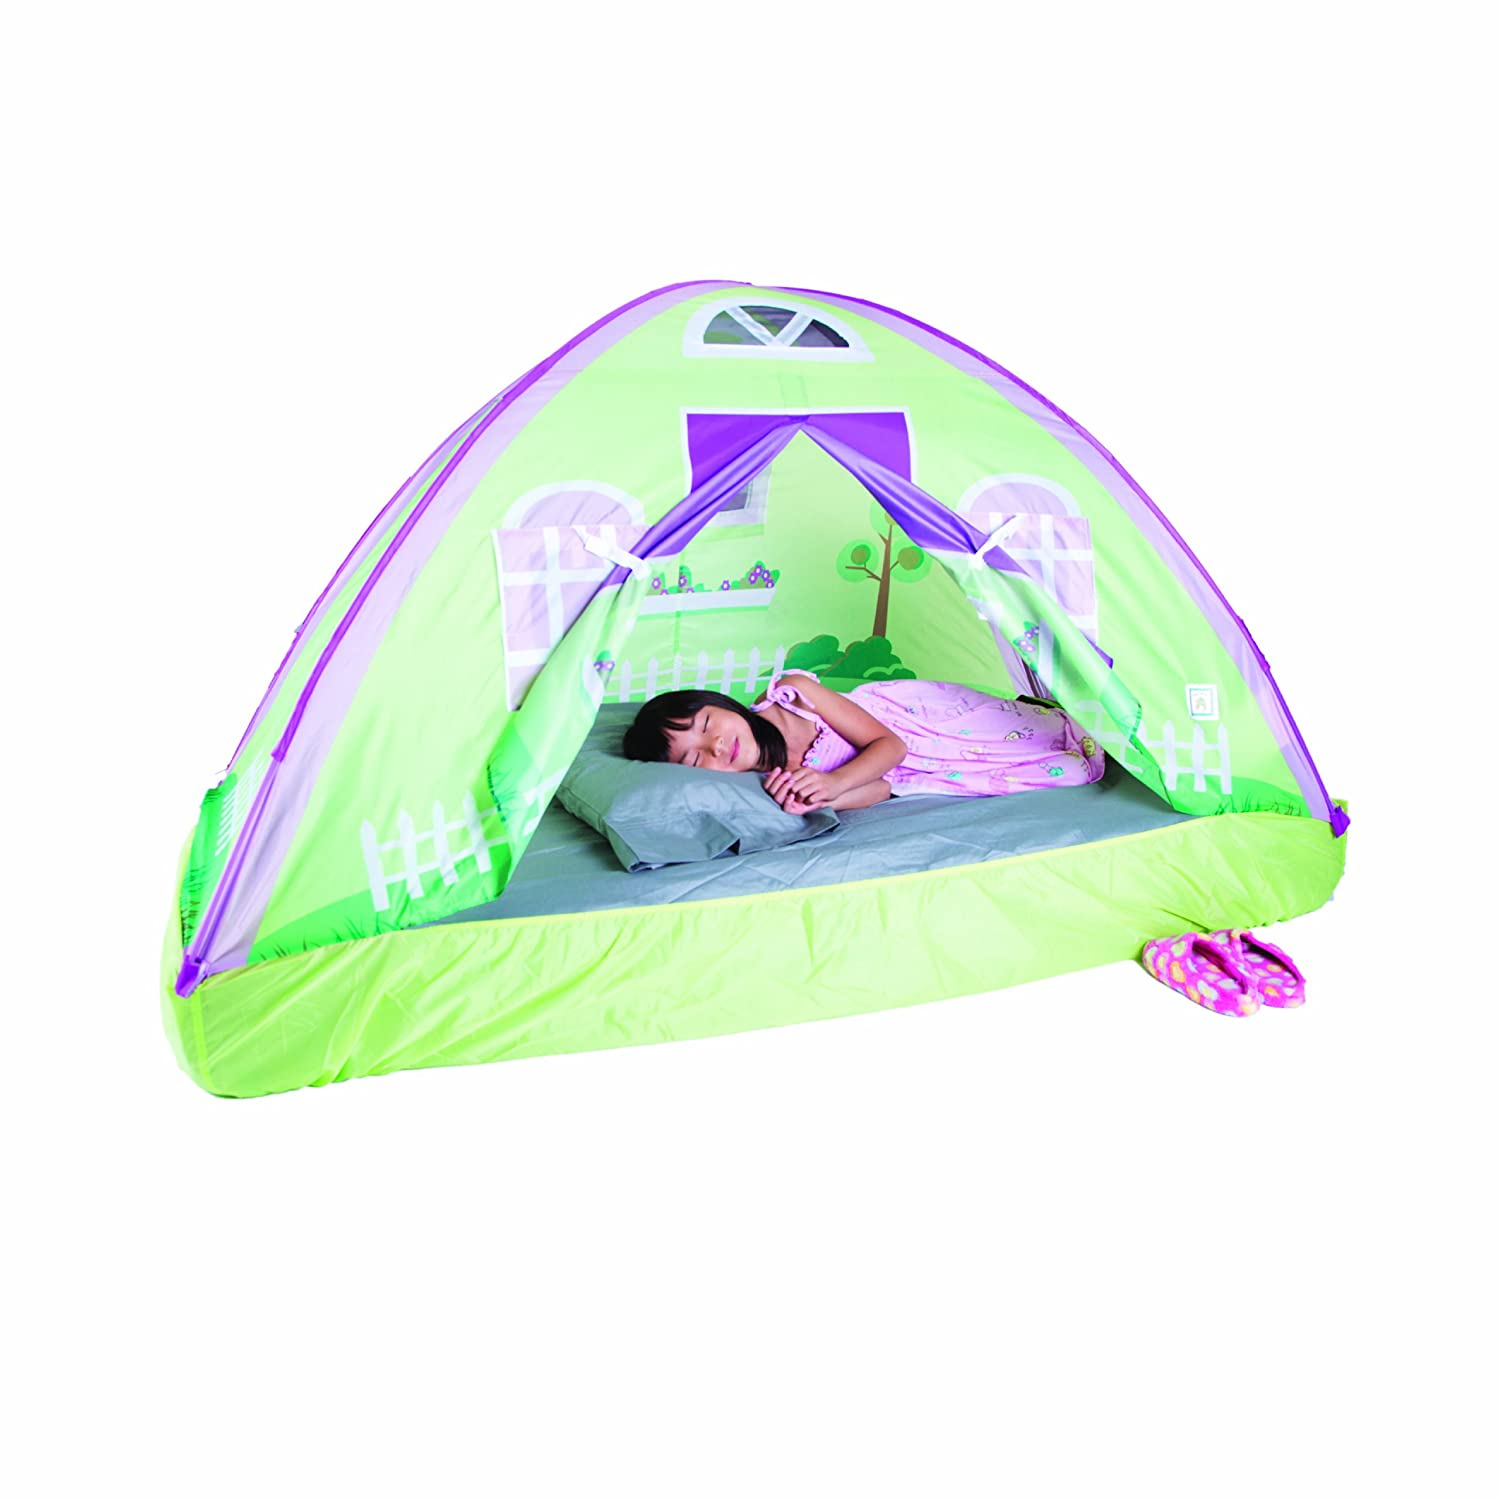 Pacific Play Tents Cottage Bed Tent